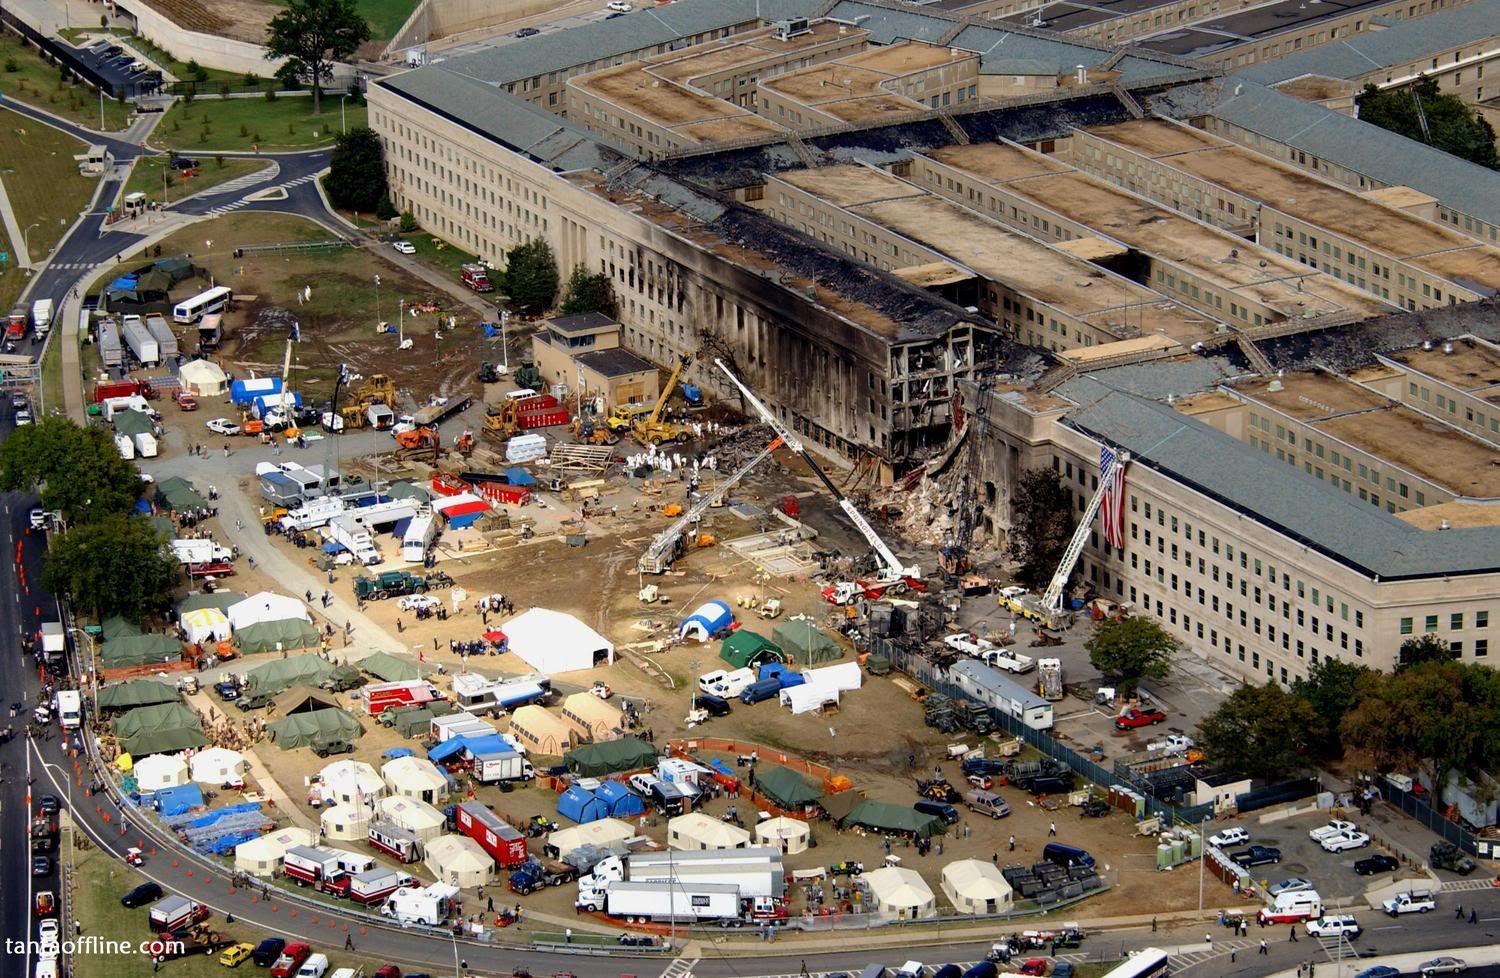 What Hit The Pentagon On 9 11 A Missile Or Plane